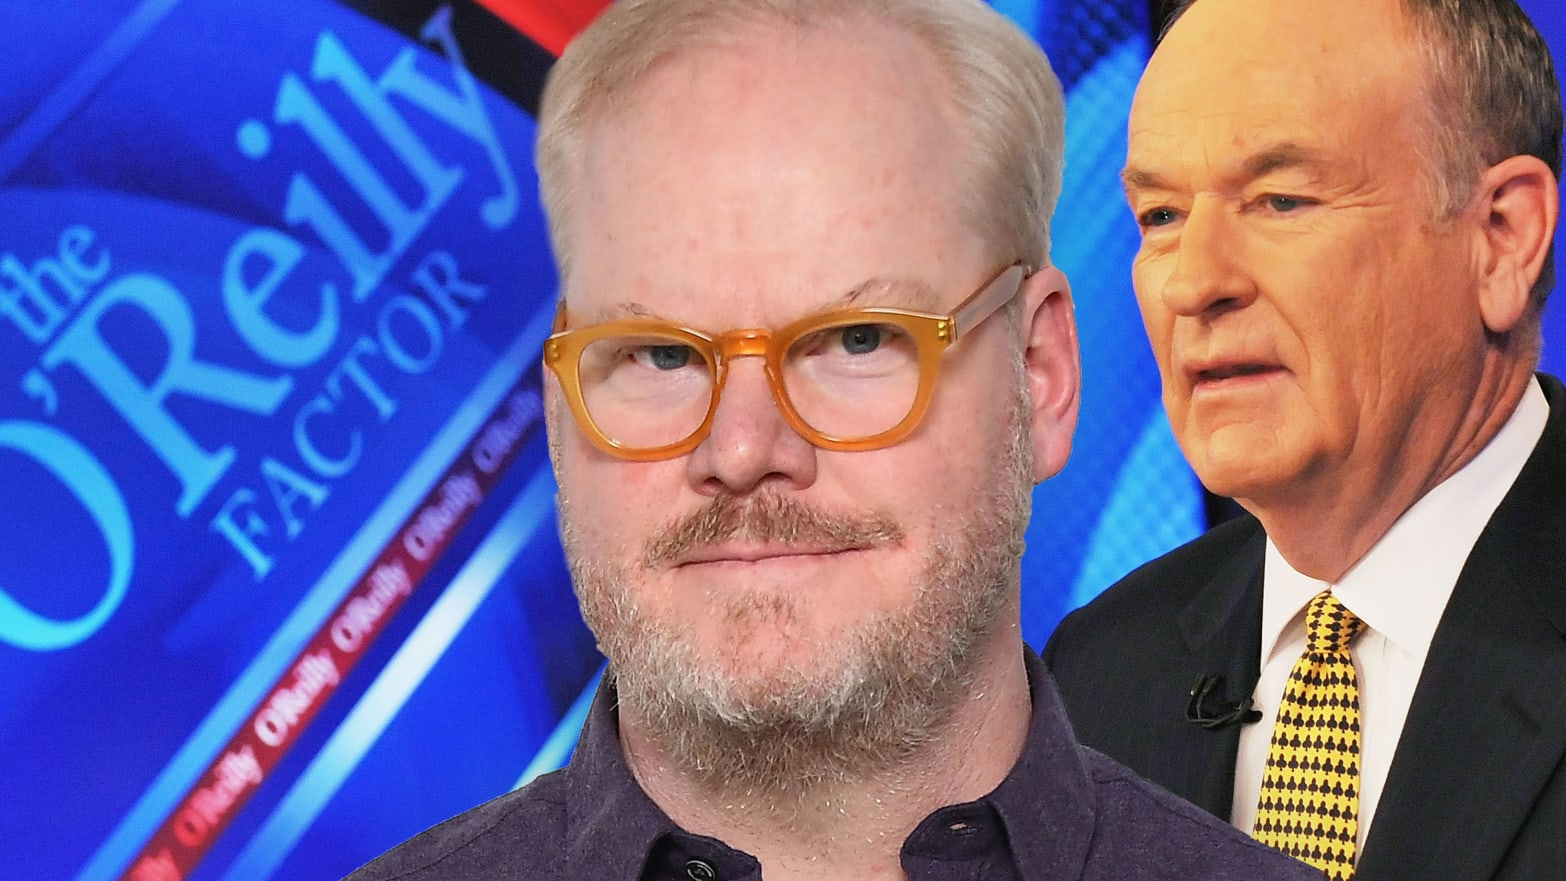 Jim Gaffigan: What It's Like to Get 'Attacked' by Bill O'Reilly on Fox News